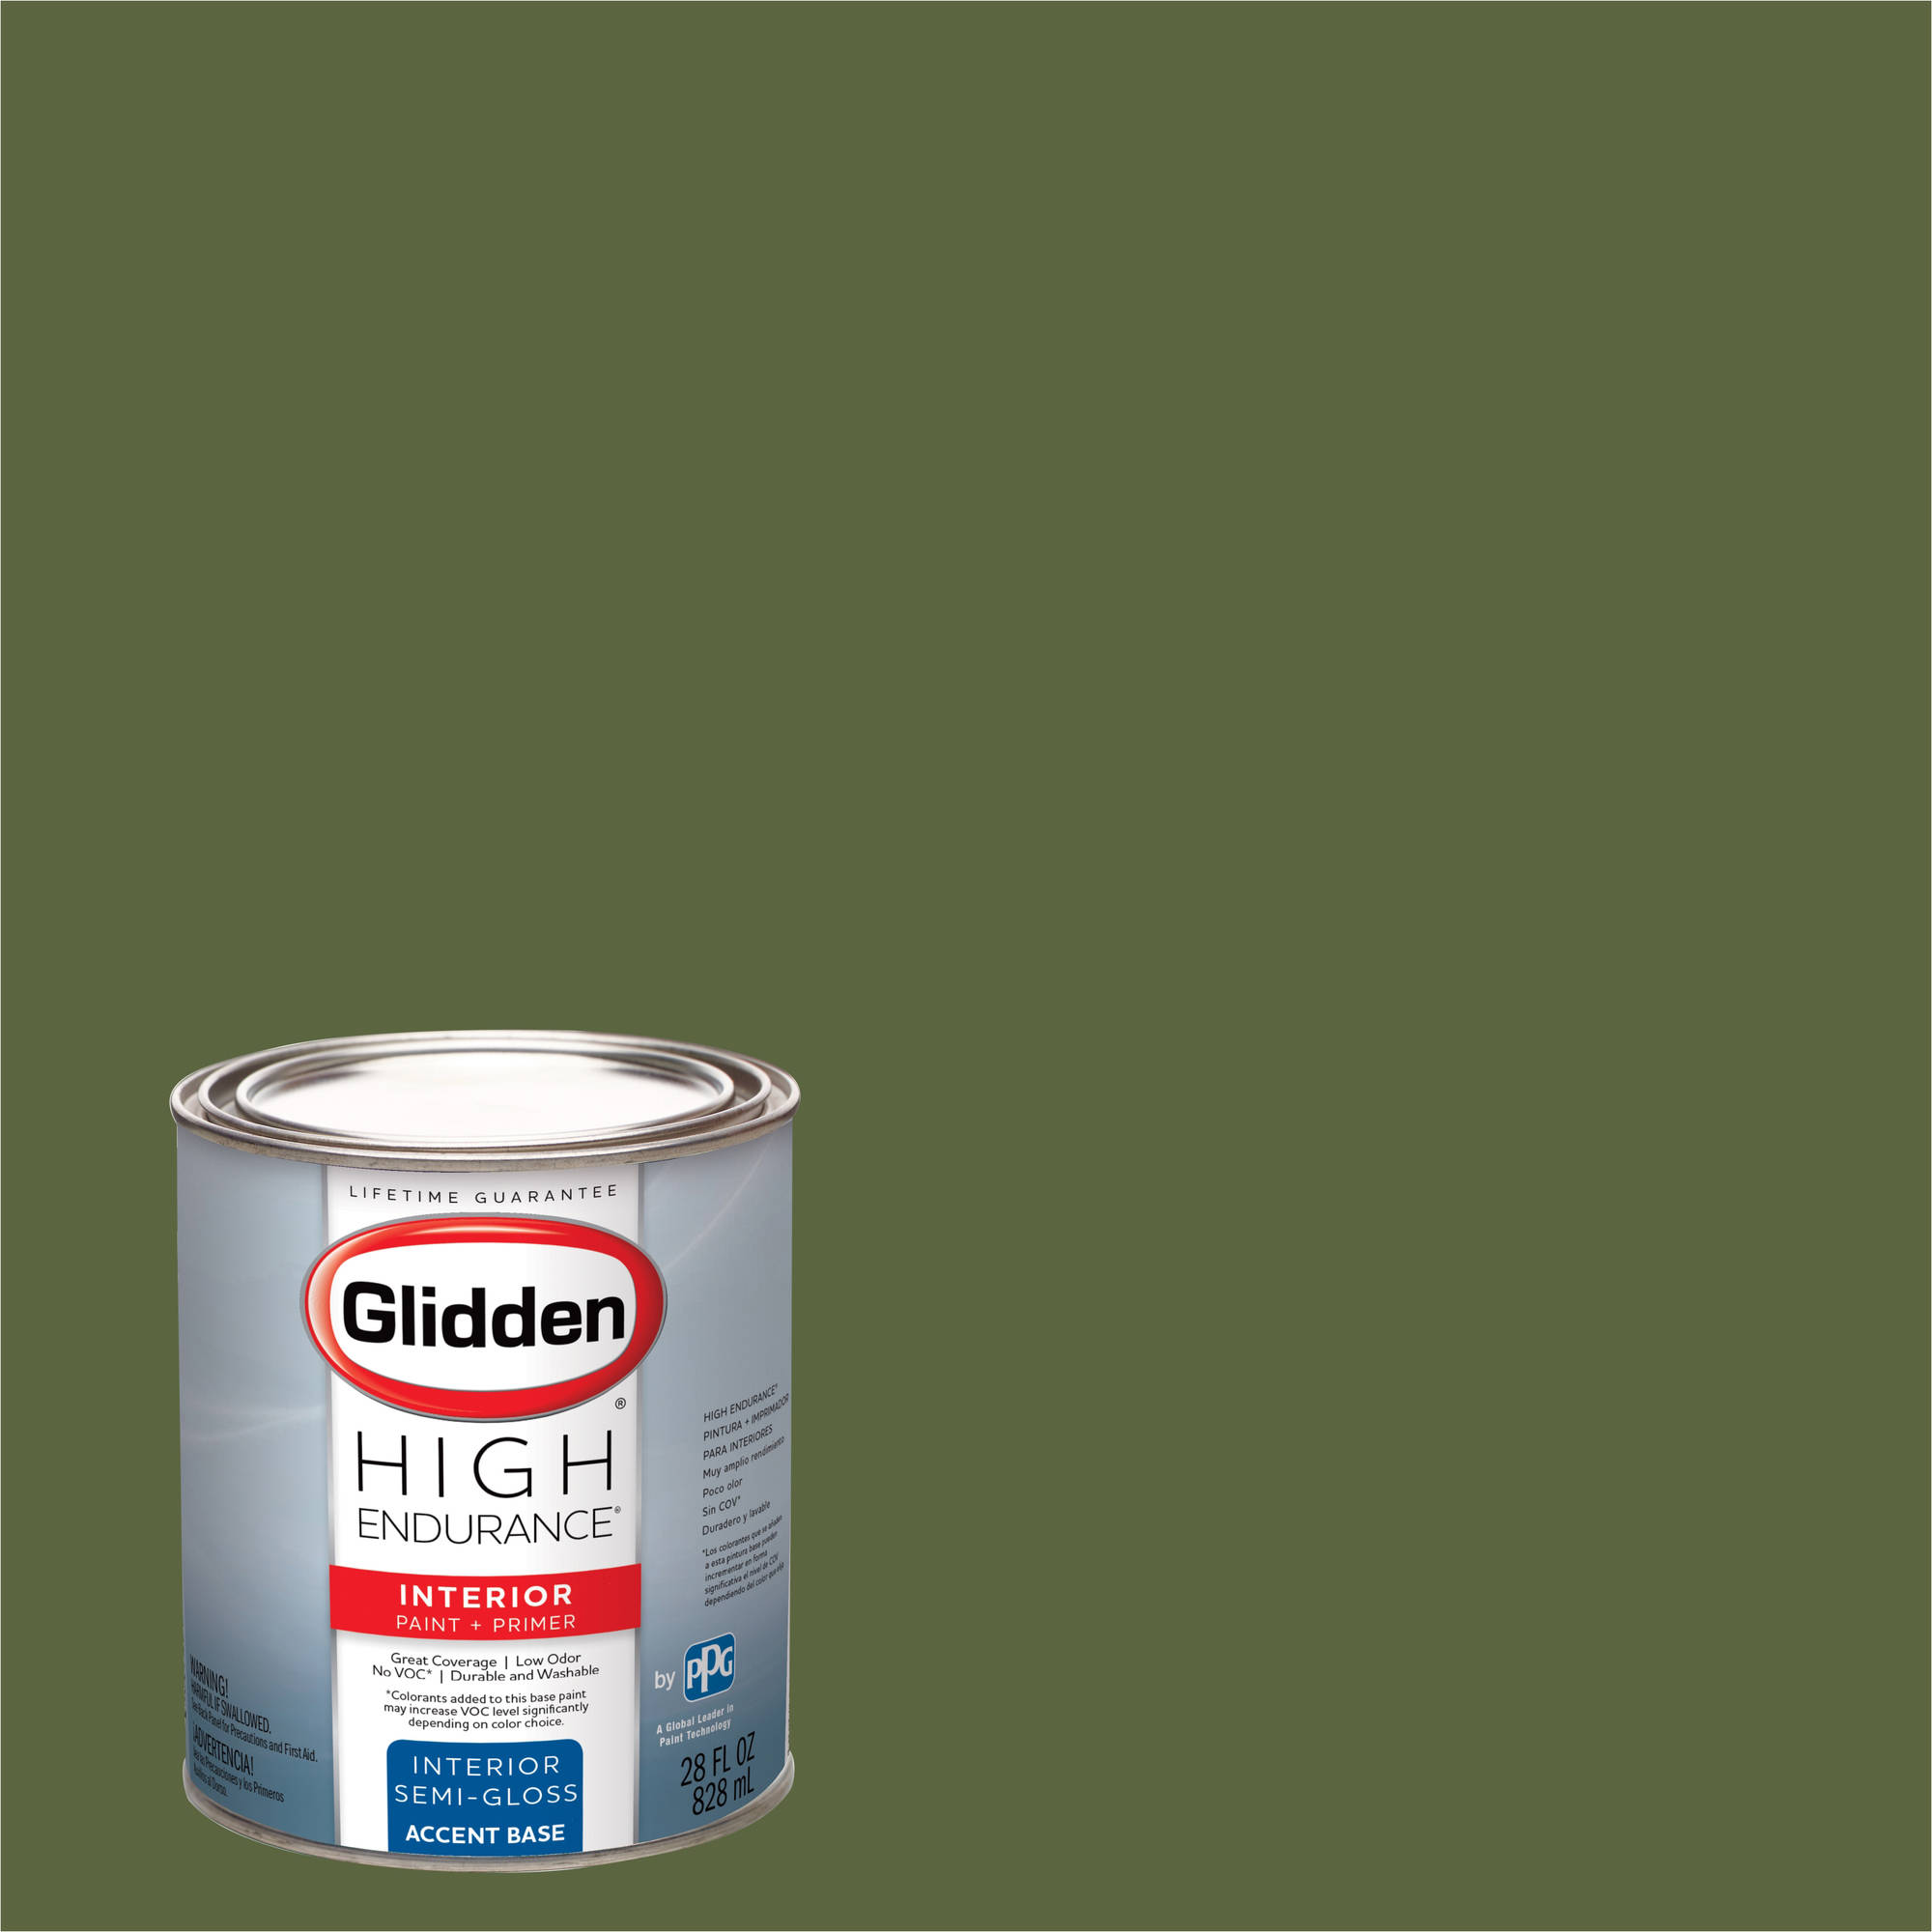 Glidden High Endurance Interior Paint and Primer, Afternoon Martini Olive, #10GY 15 213 by